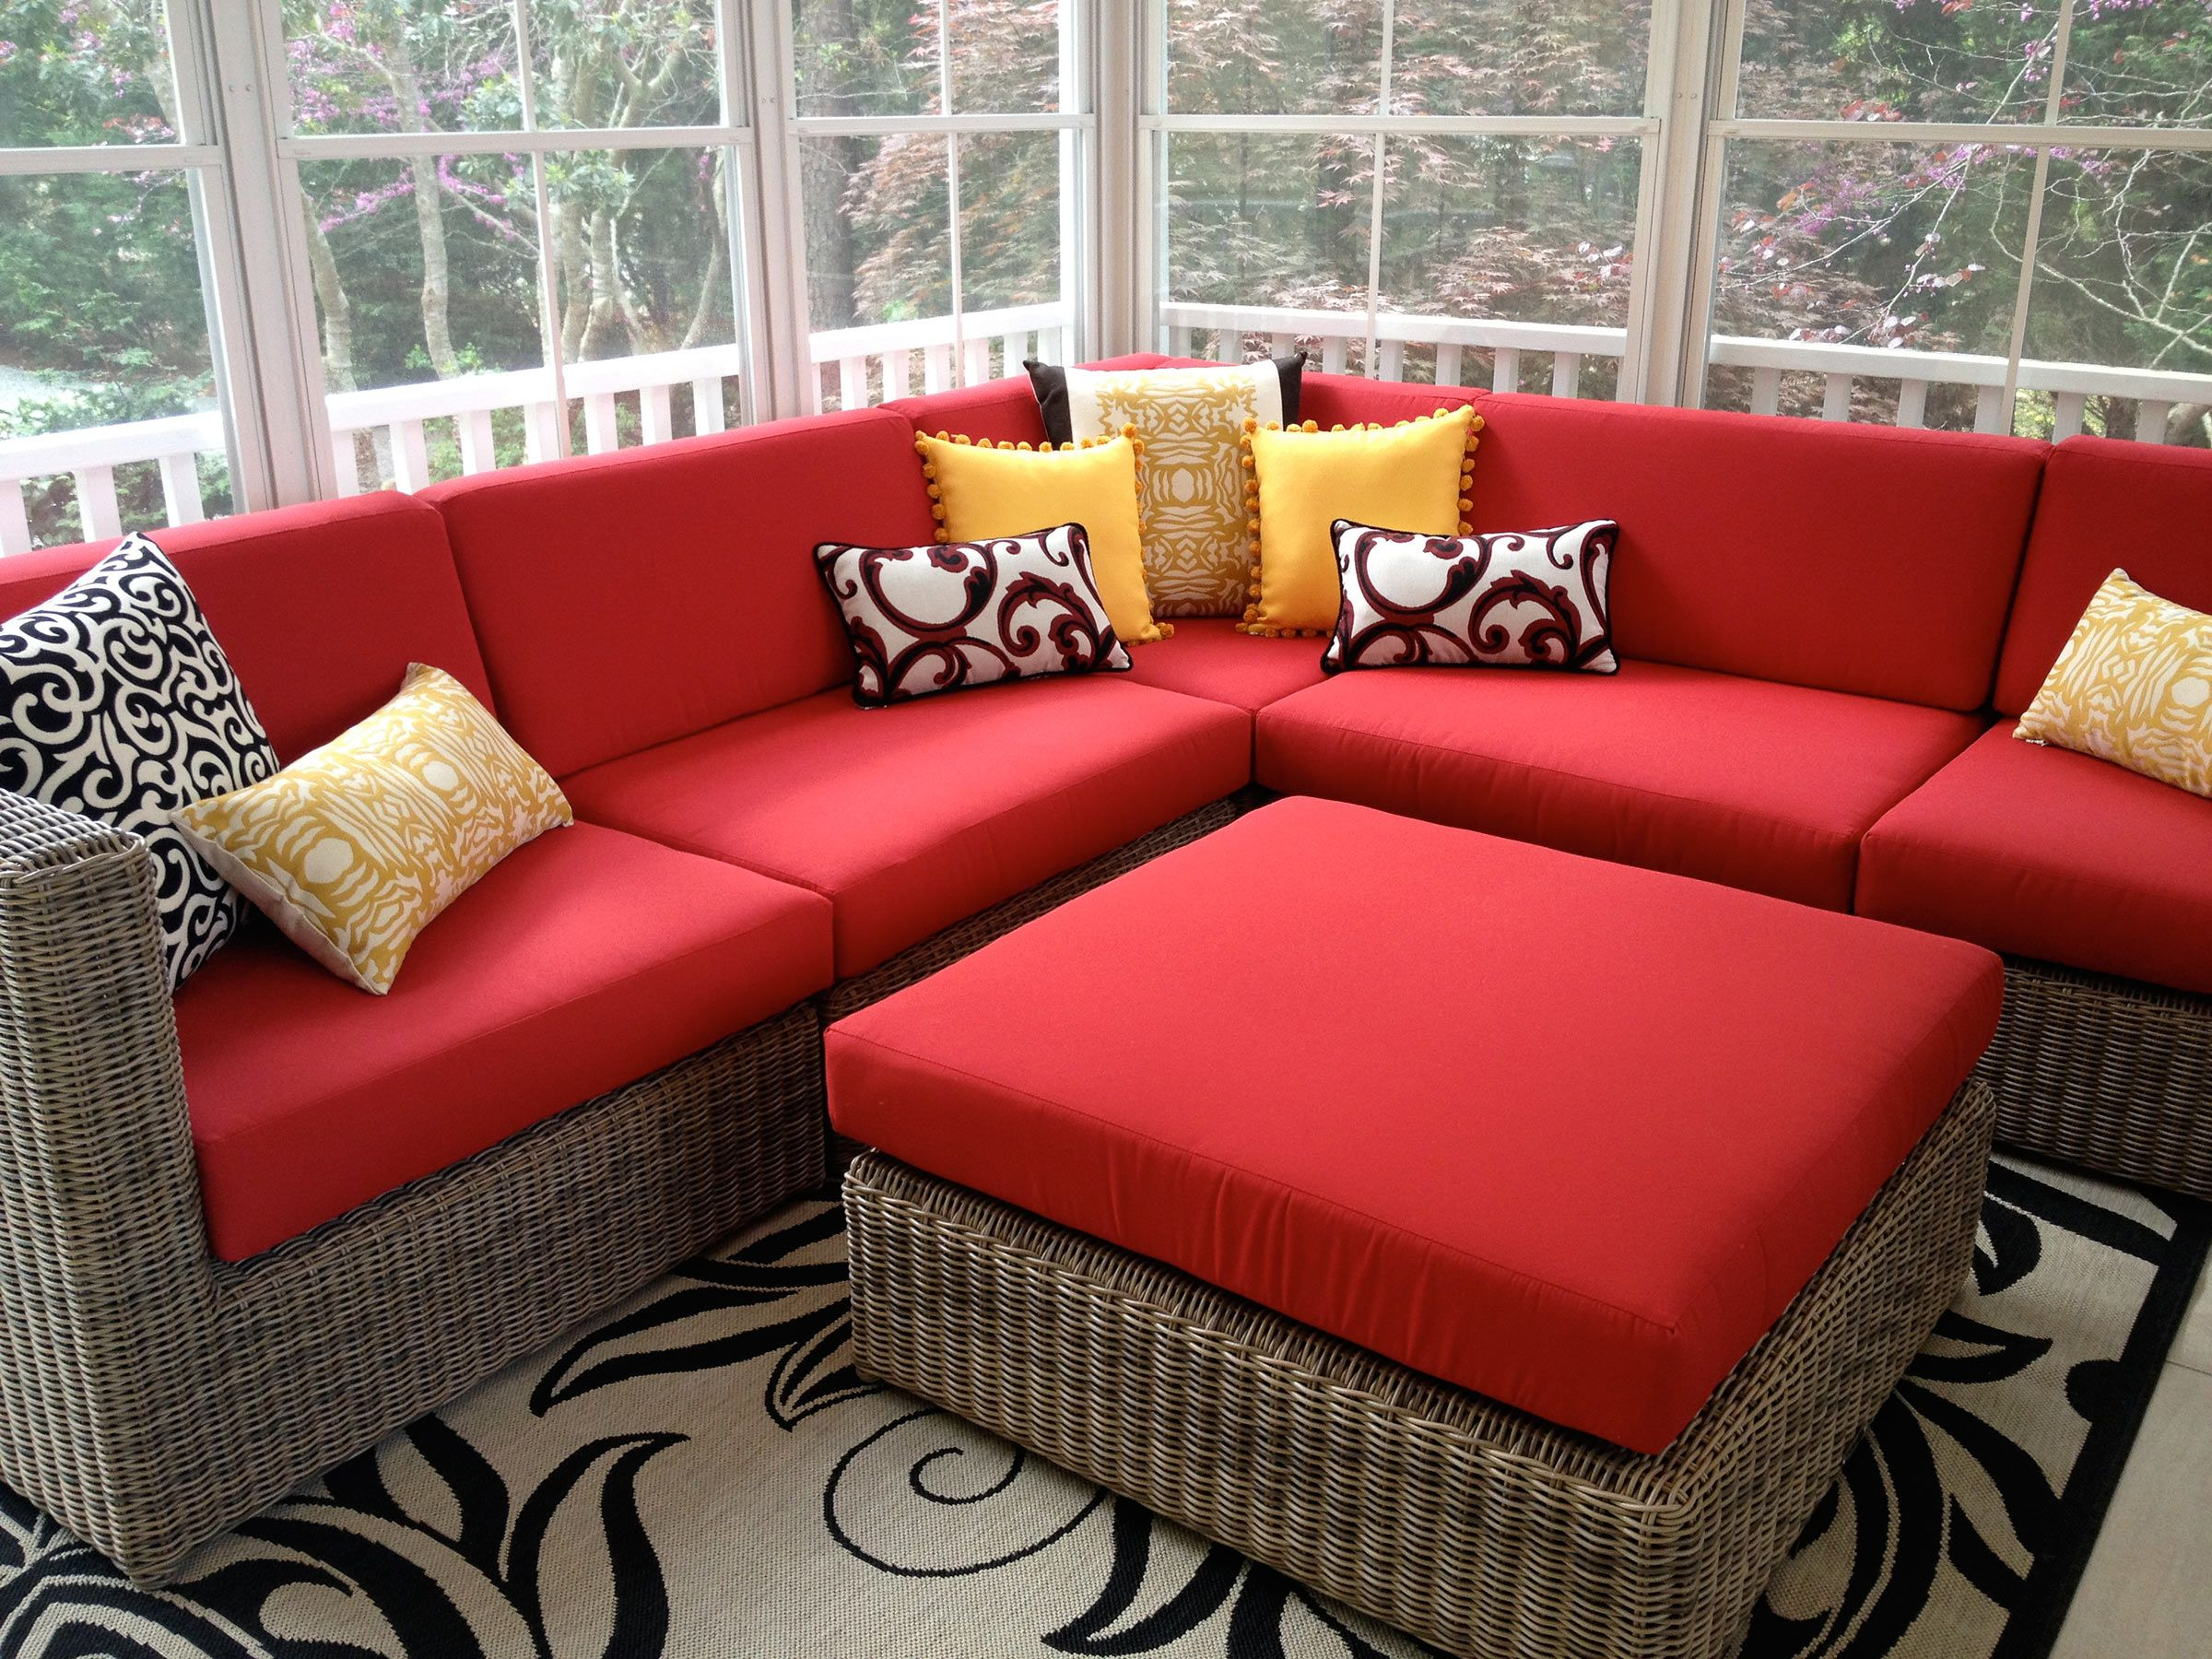 Outdoor Spaces   Mary Sherwood Lake Living and Interior ... on Living Spaces Outdoor Sectional id=37640